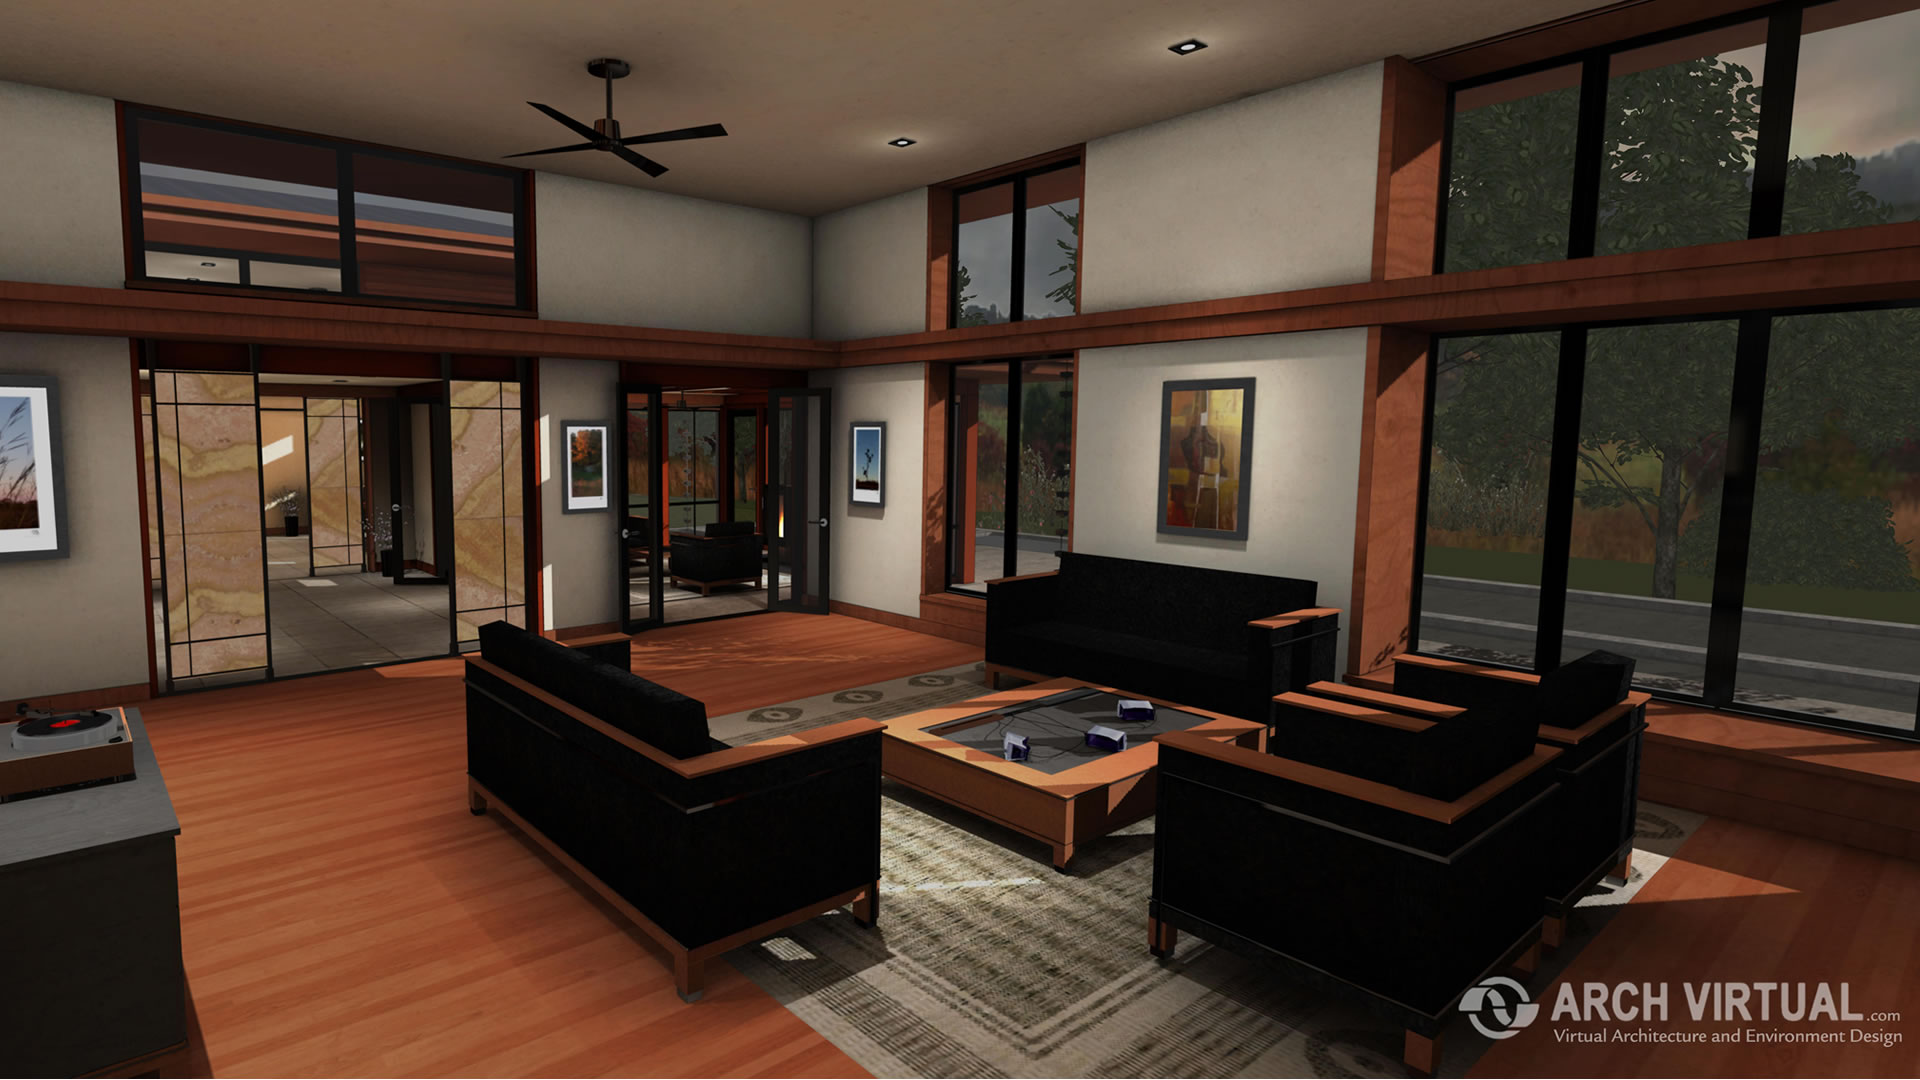 Architecture Own House Virtual Game Your Decorating Build